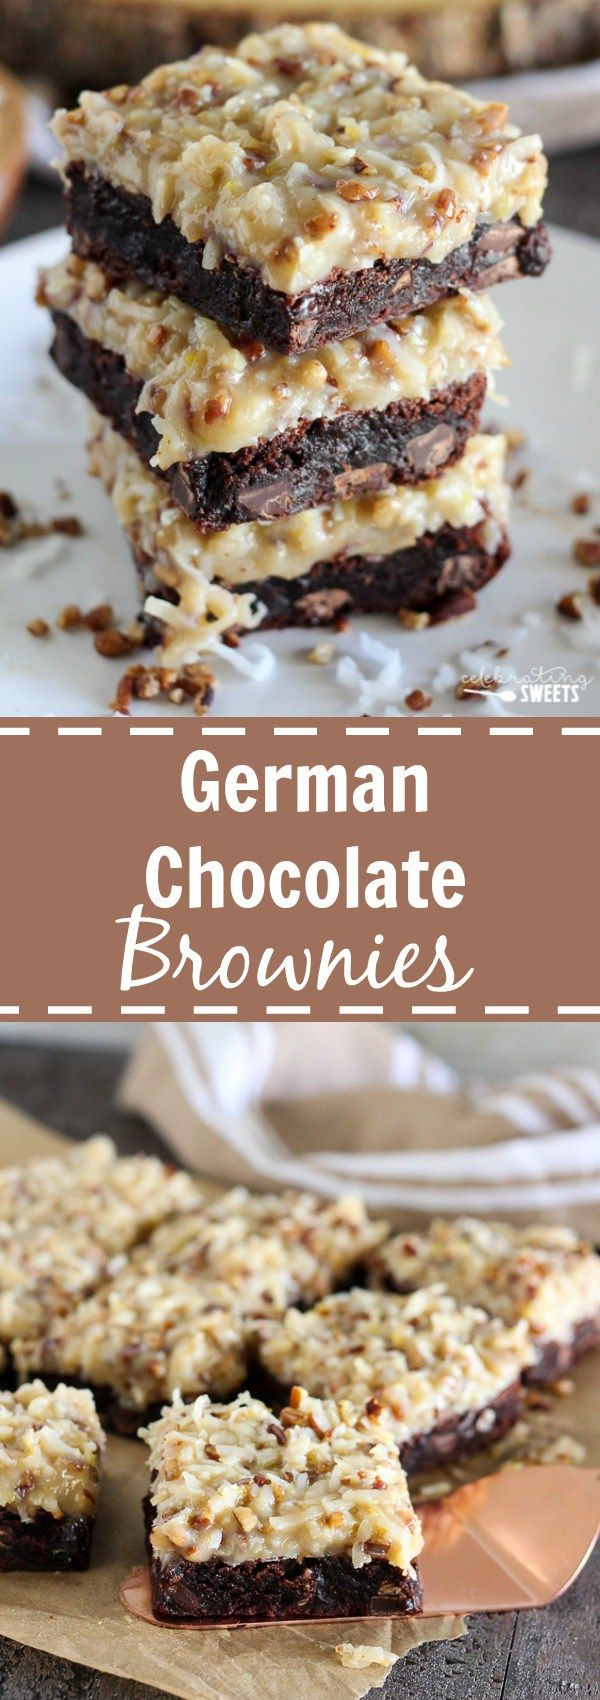 Best 25+ Boxed brownie recipes ideas on Pinterest | Box brownie ...